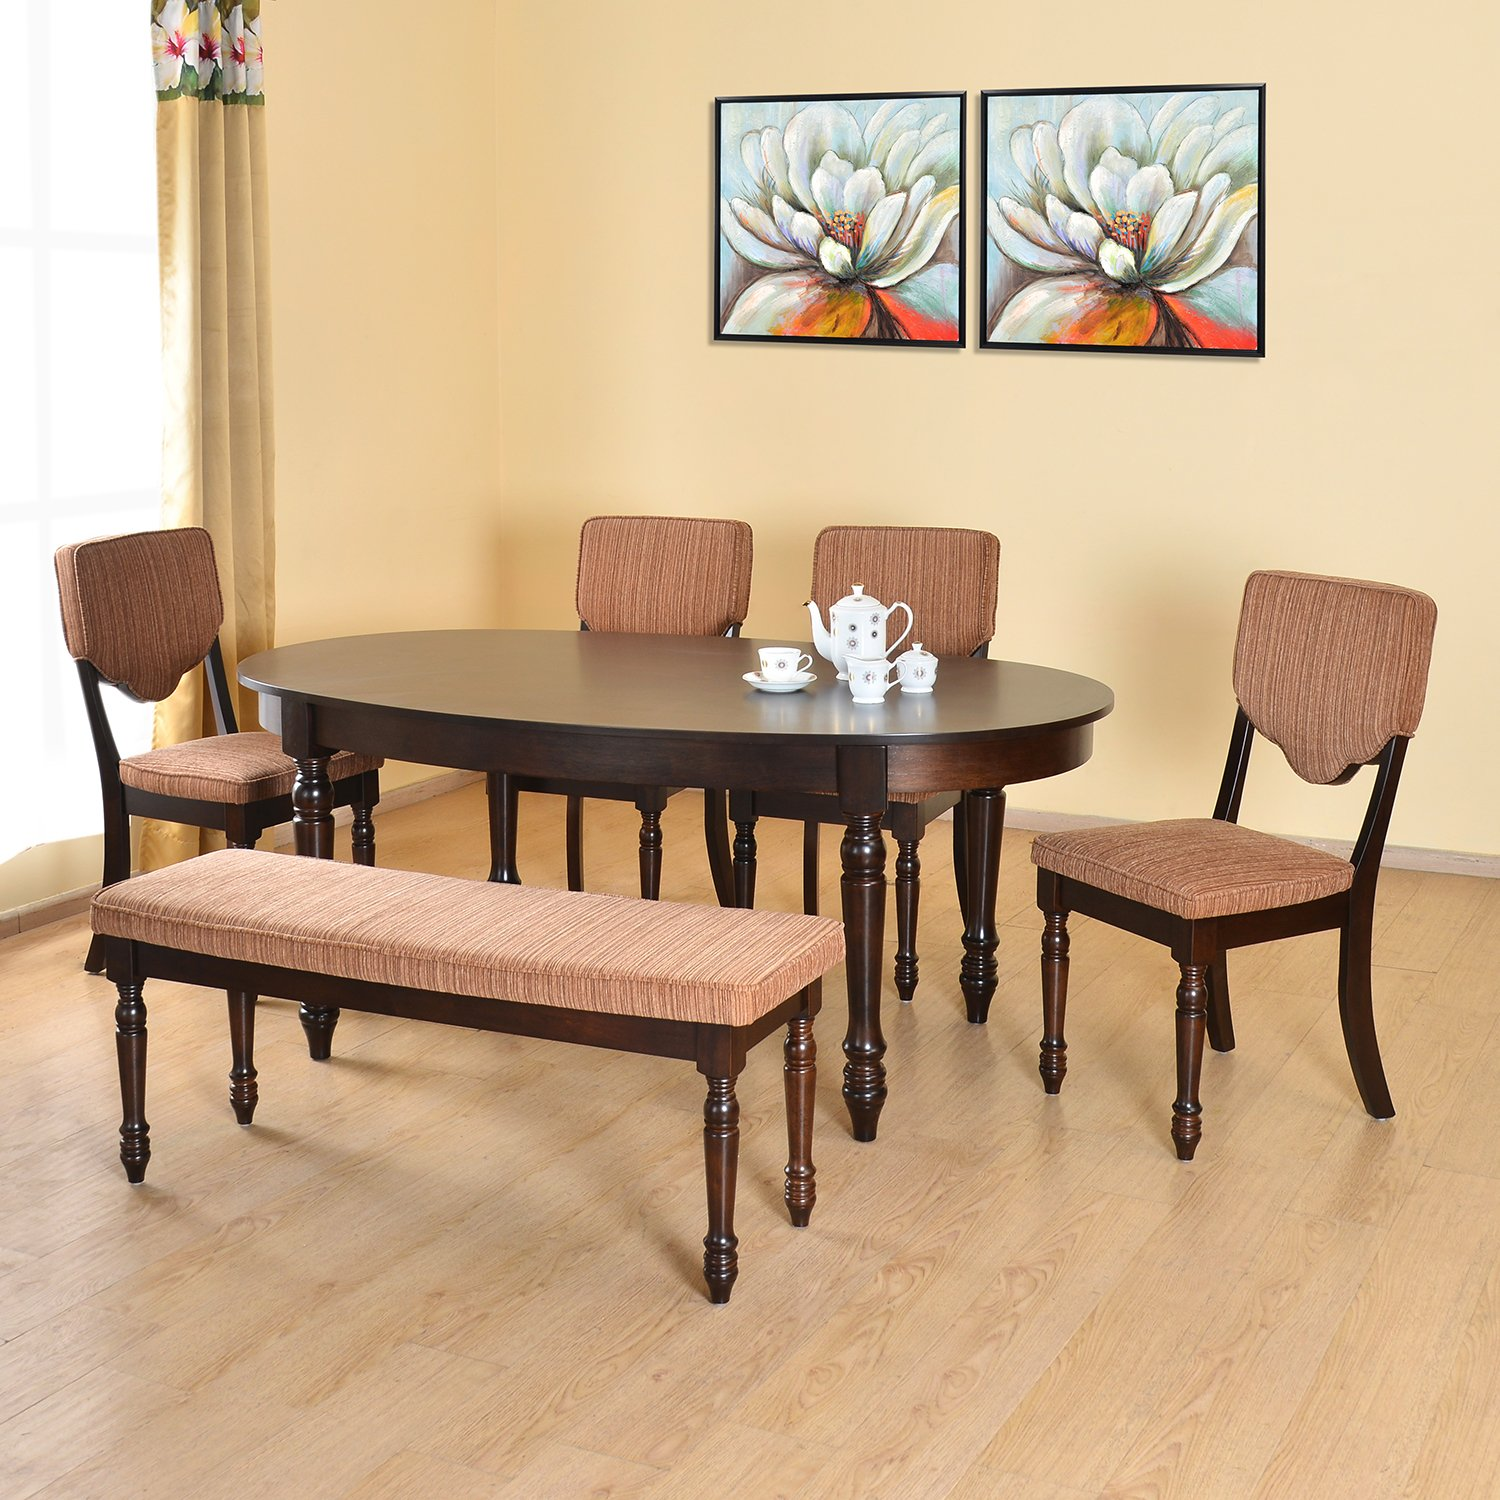 Home by nilkamal brown isabella dining set hot deals for Dining table set deals